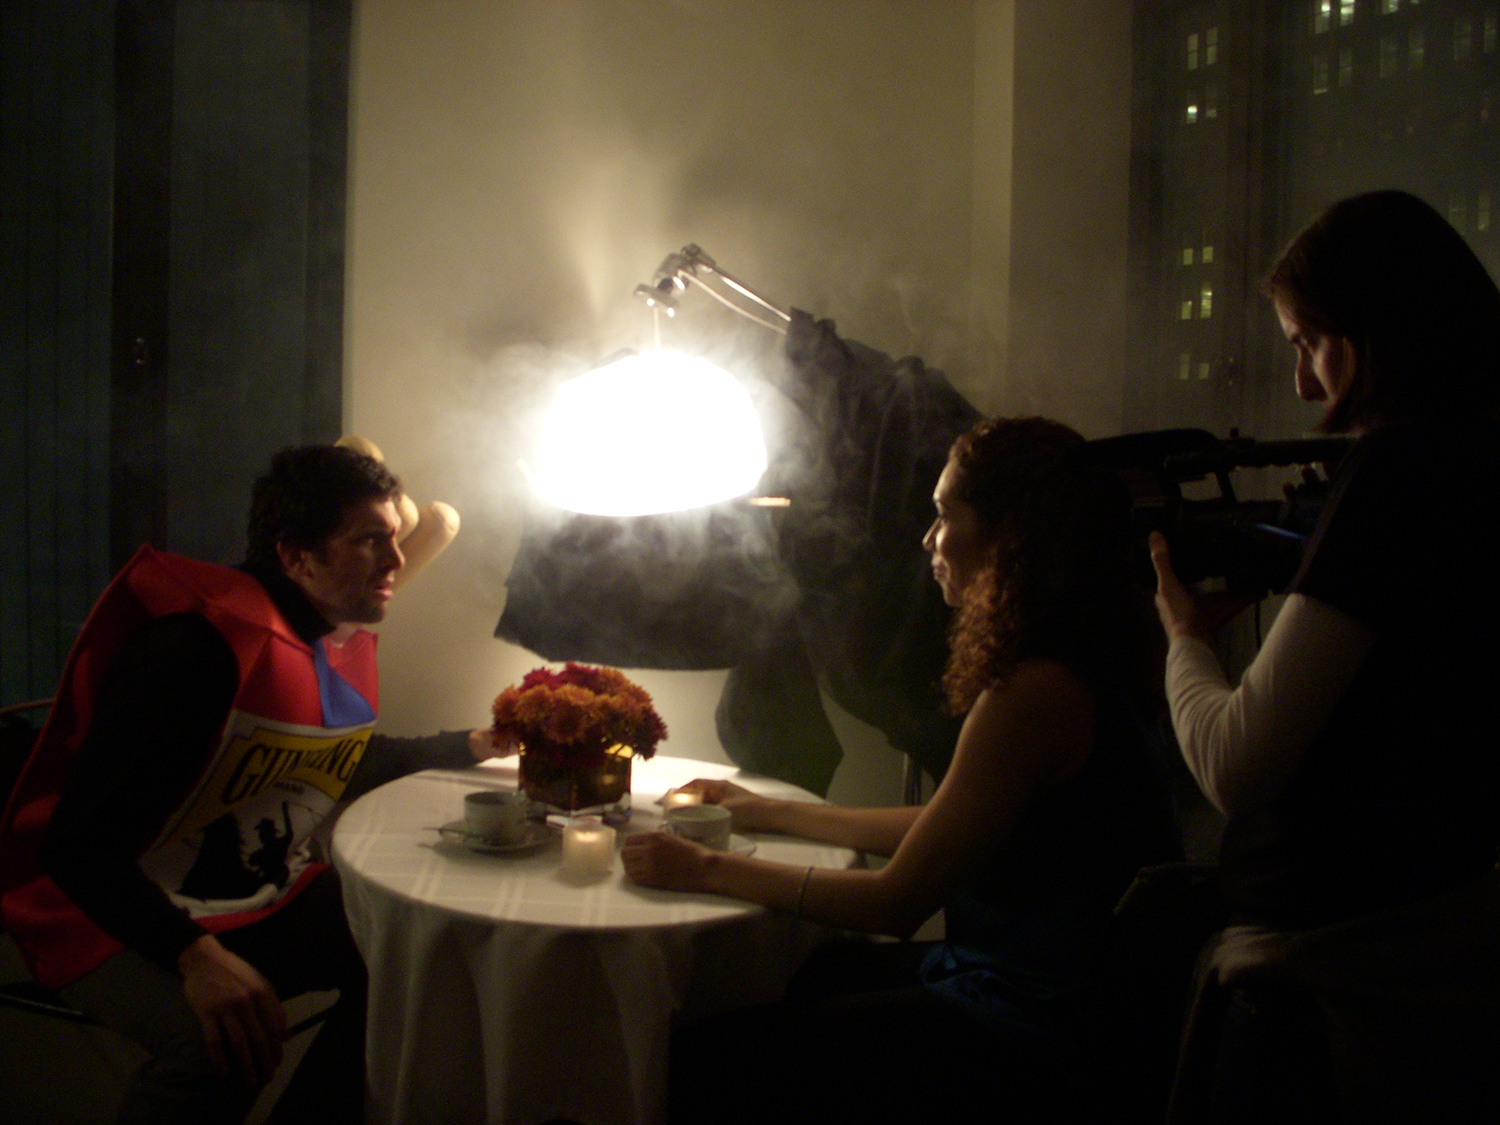 Lights, camera...smoke machine. Al DiGiulio and Christa Pryor in a breakup moment on the set.